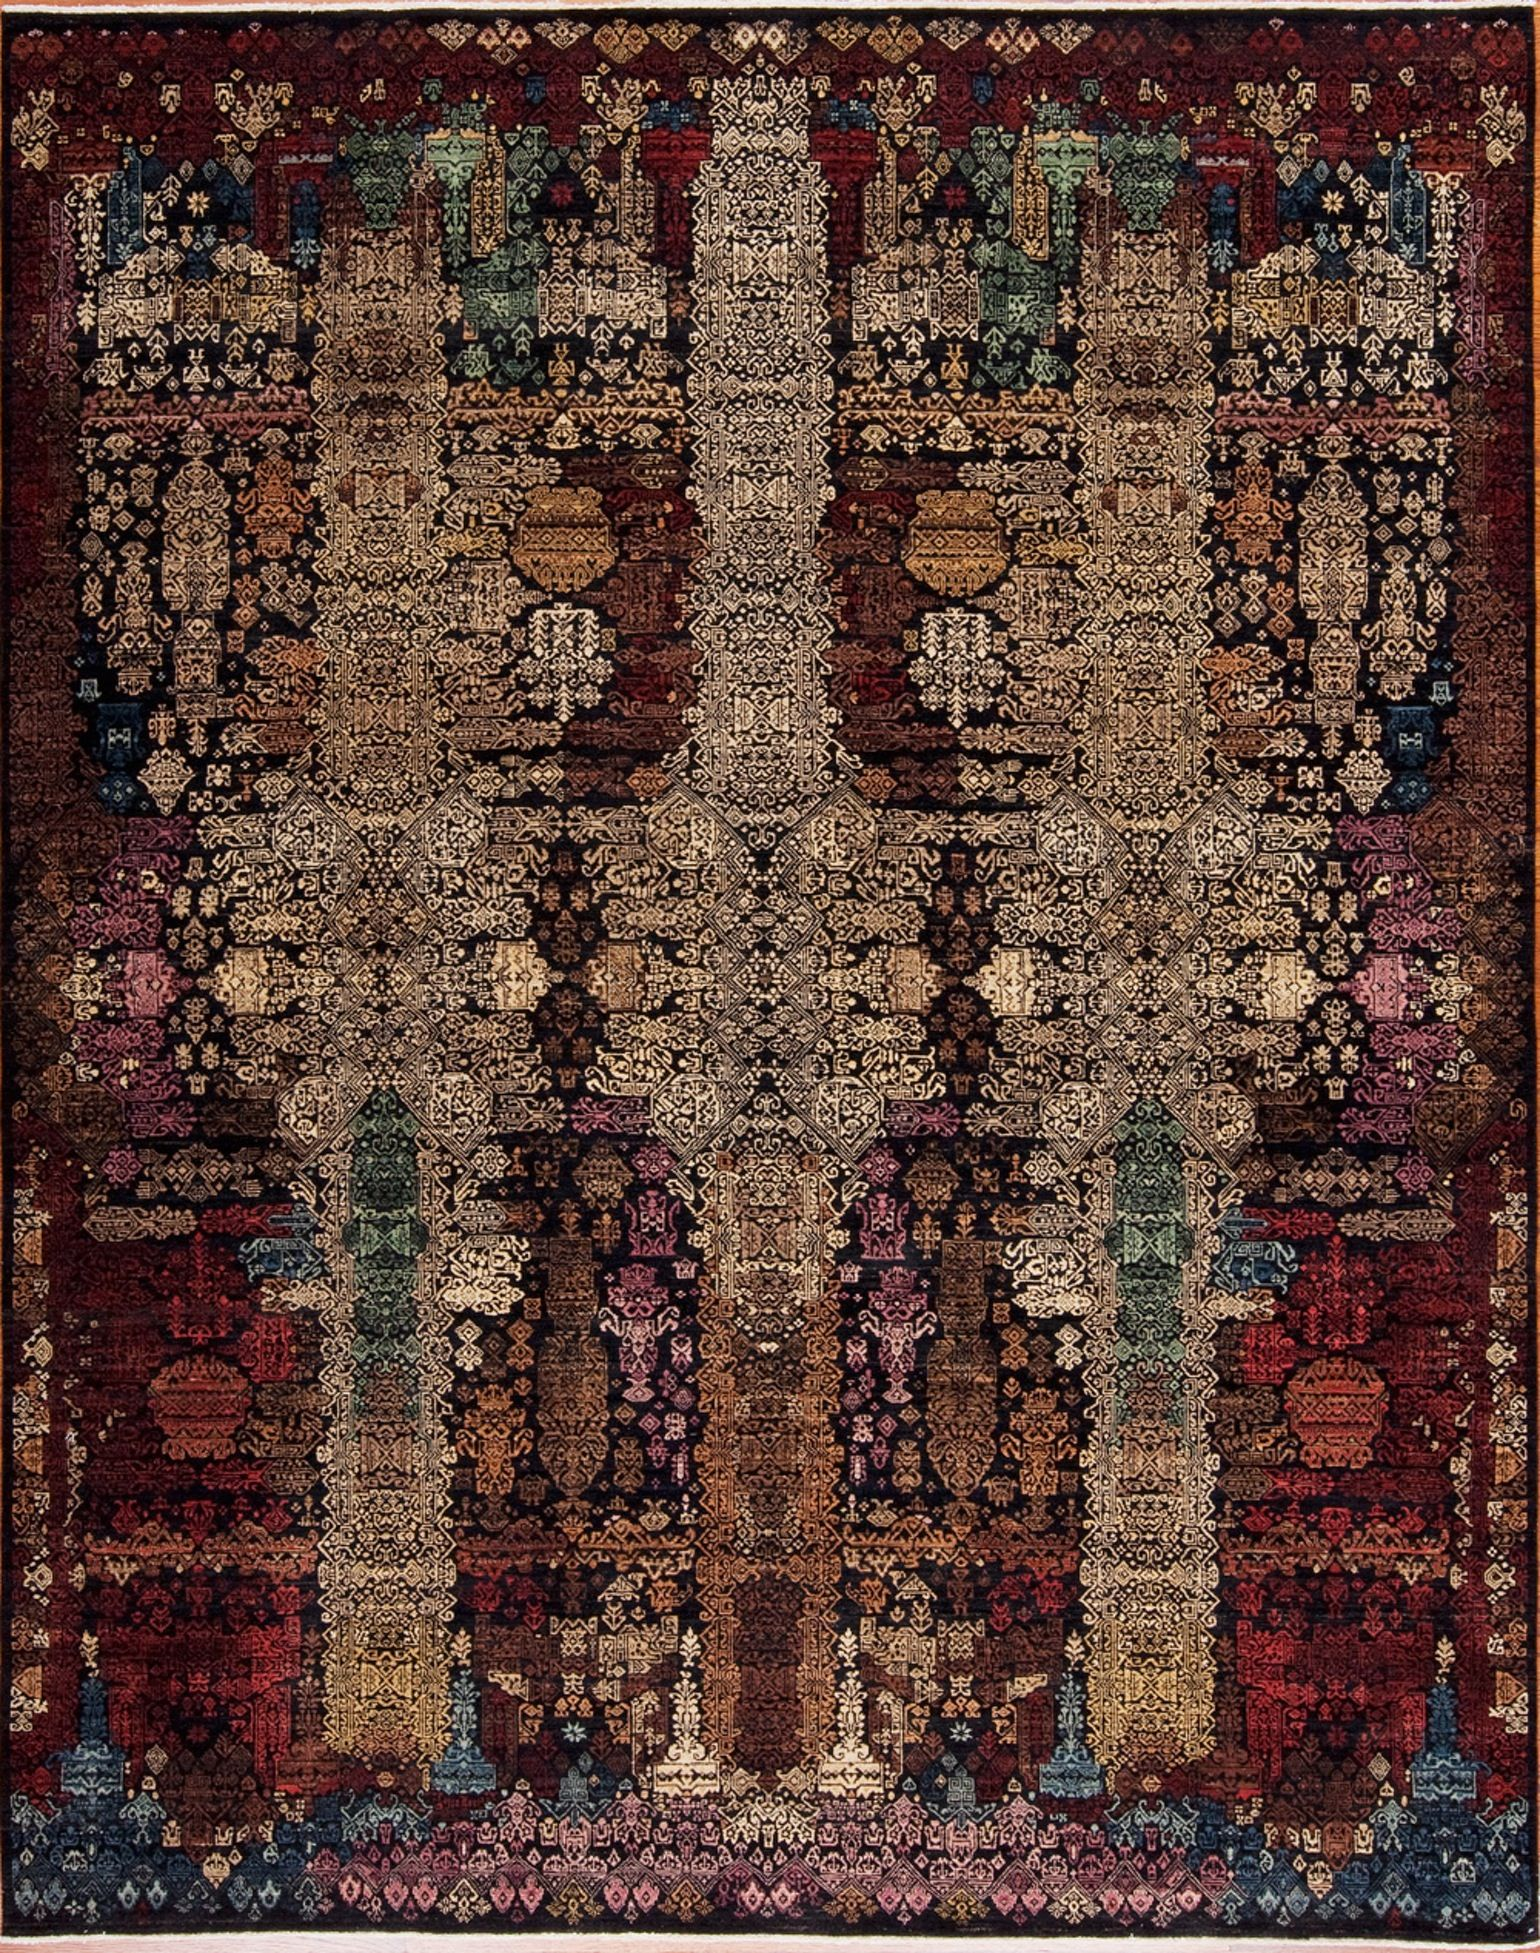 rug bashian favorite starburst my taupe home greenwich rugs pin